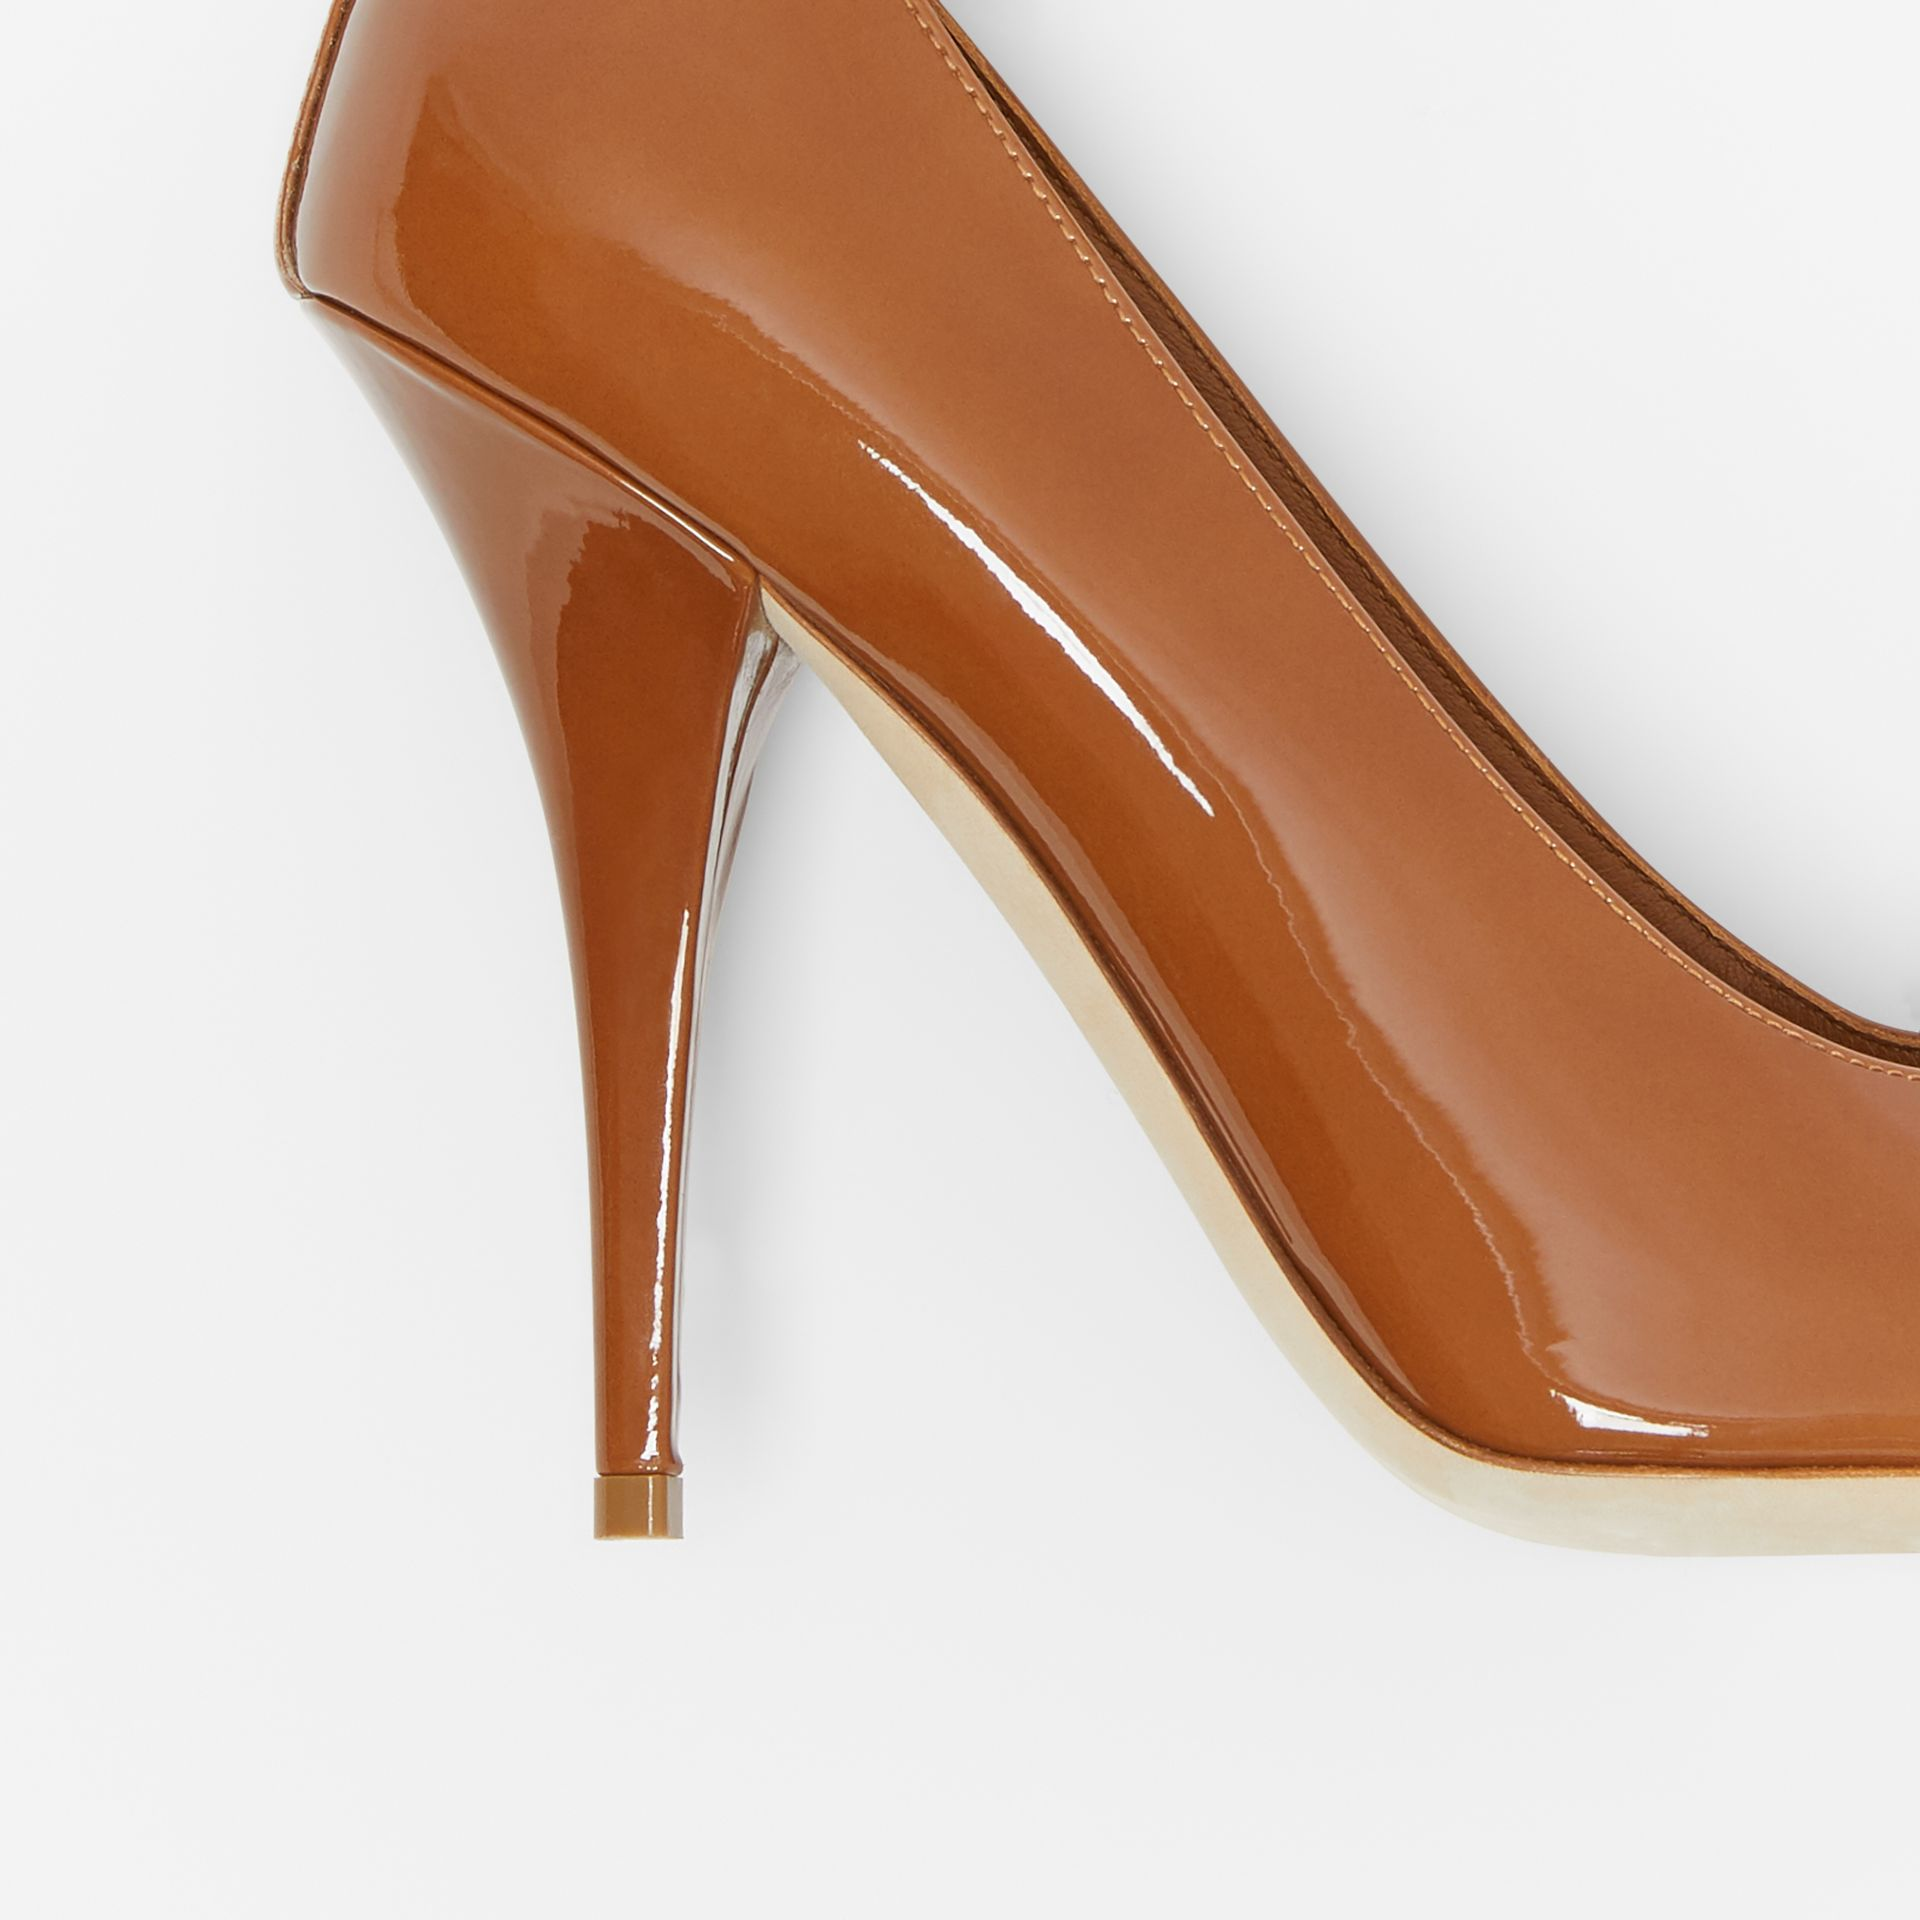 Triple Stud Patent Leather Point-toe Pumps in Tan - Women | Burberry - gallery image 5